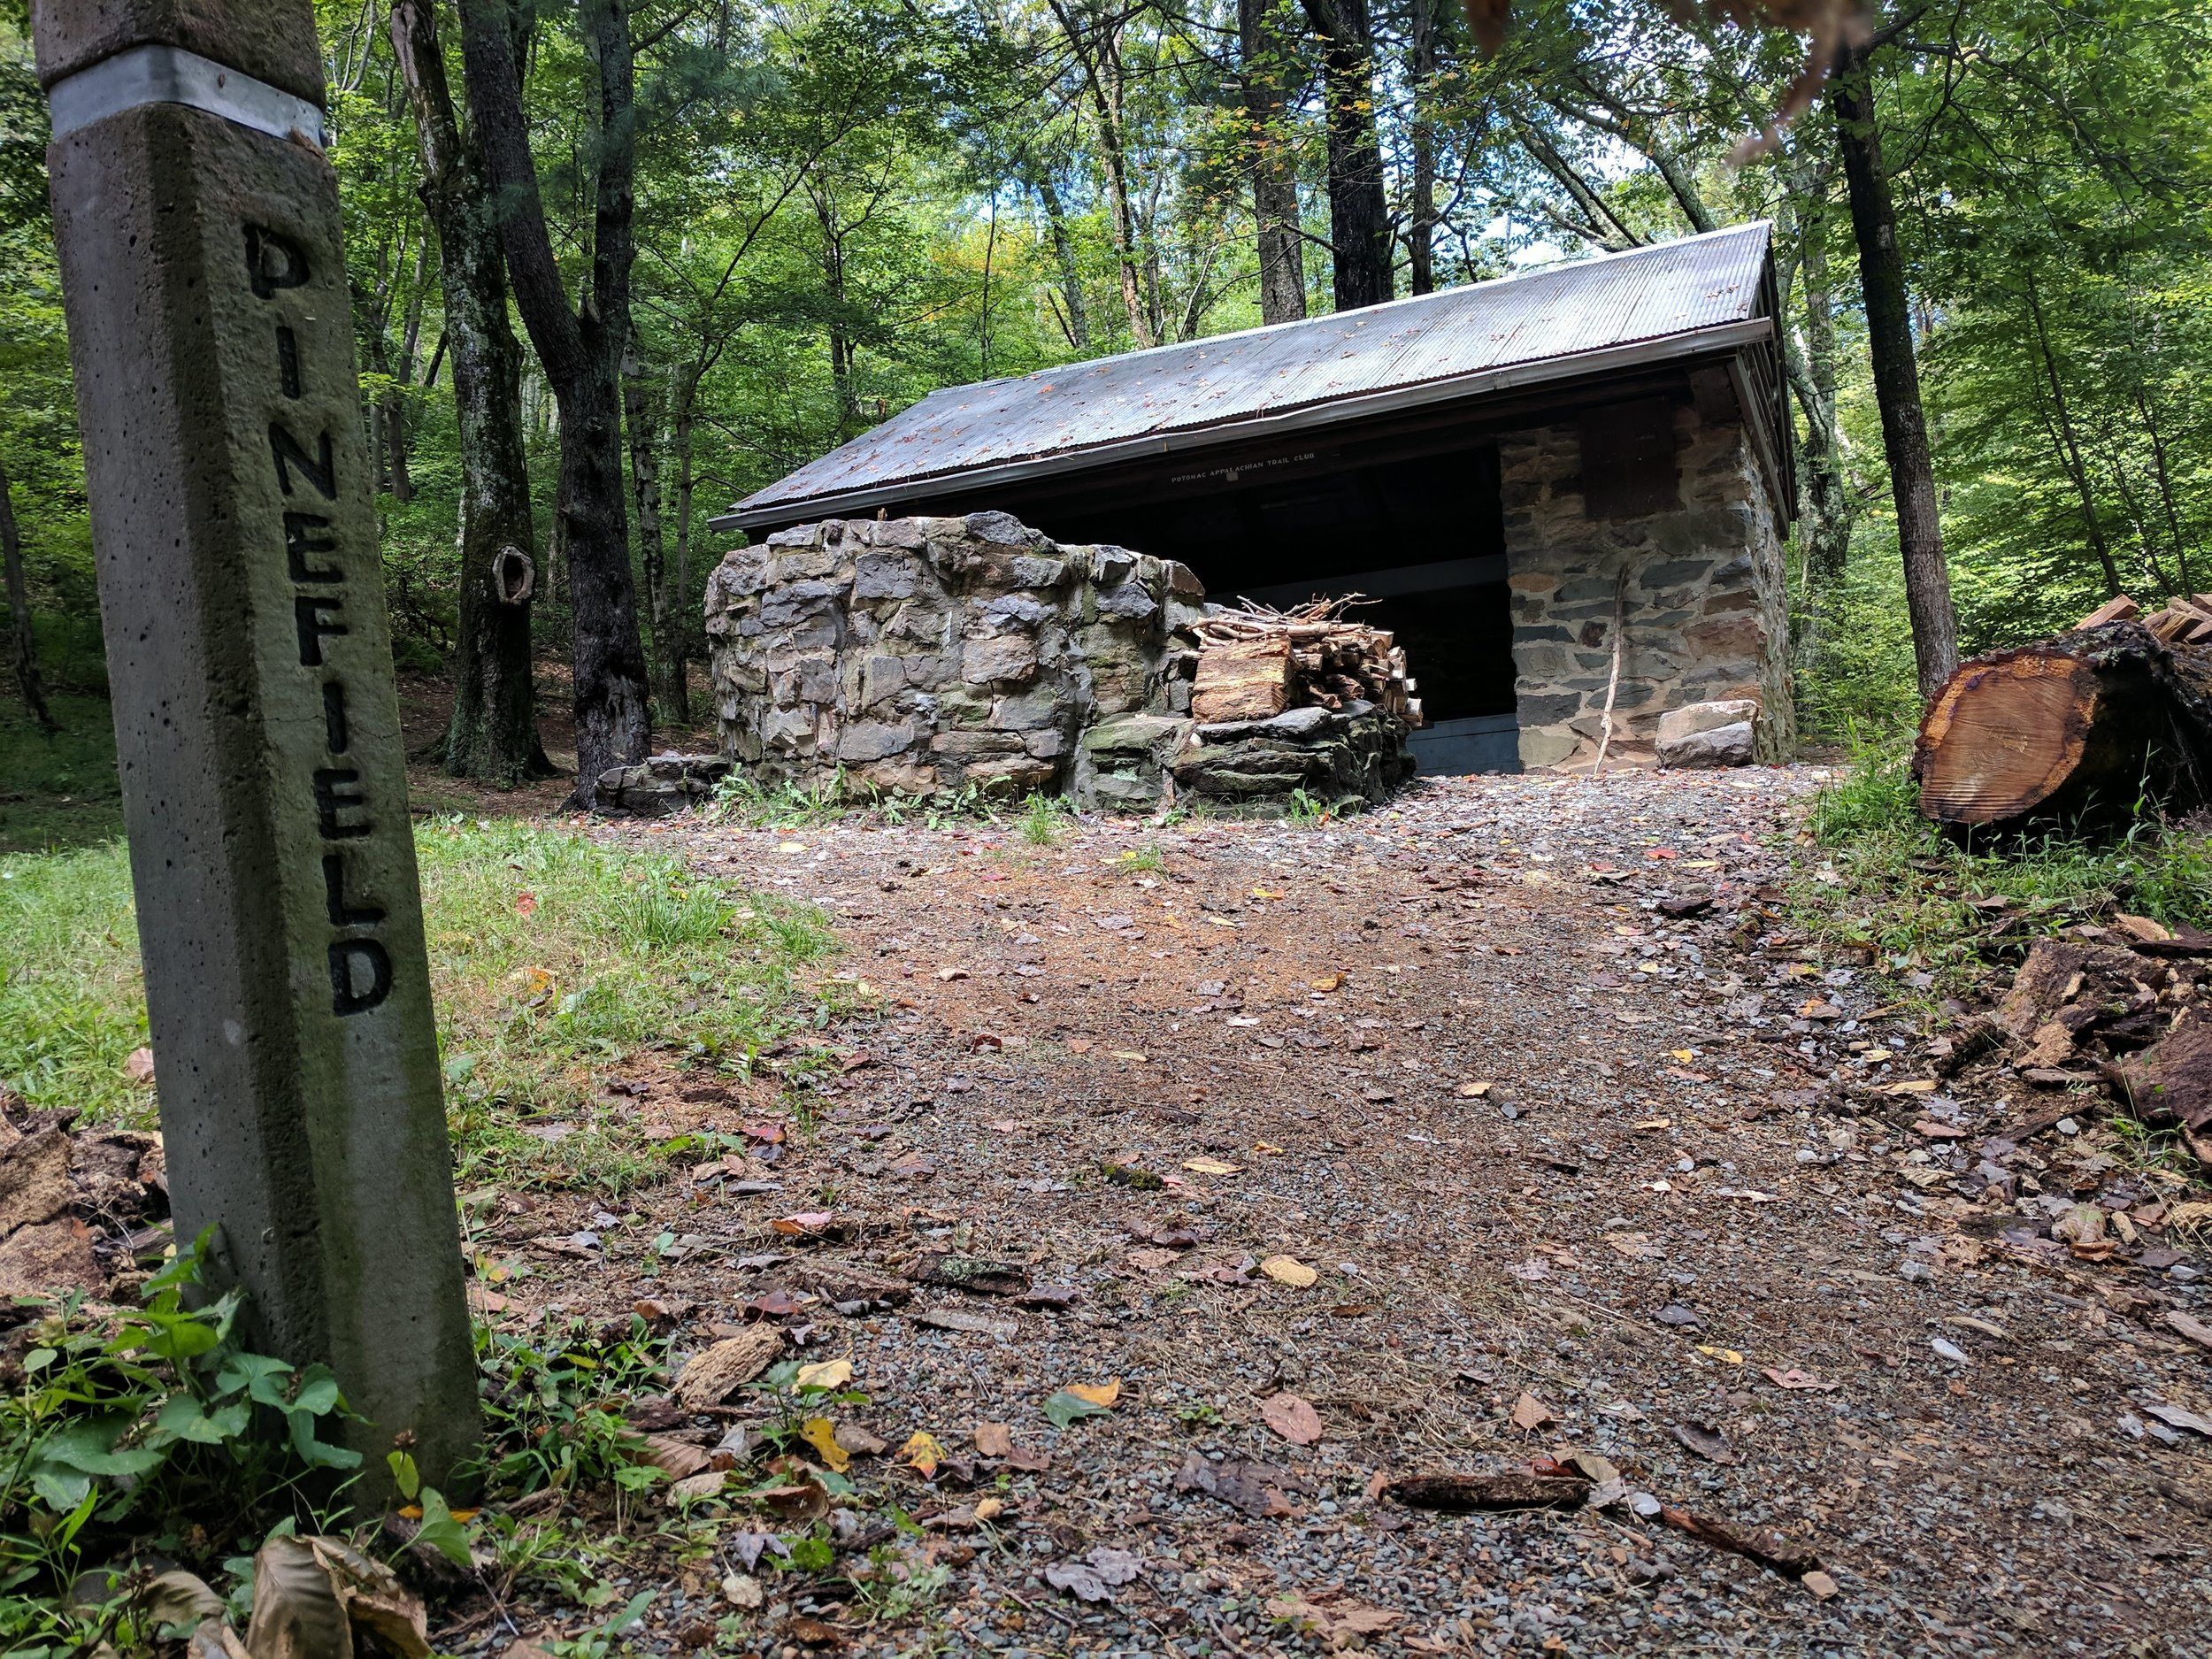 One of the many shelters from the Appalachian Trail that you will see on a hike through Shenandoah National Park